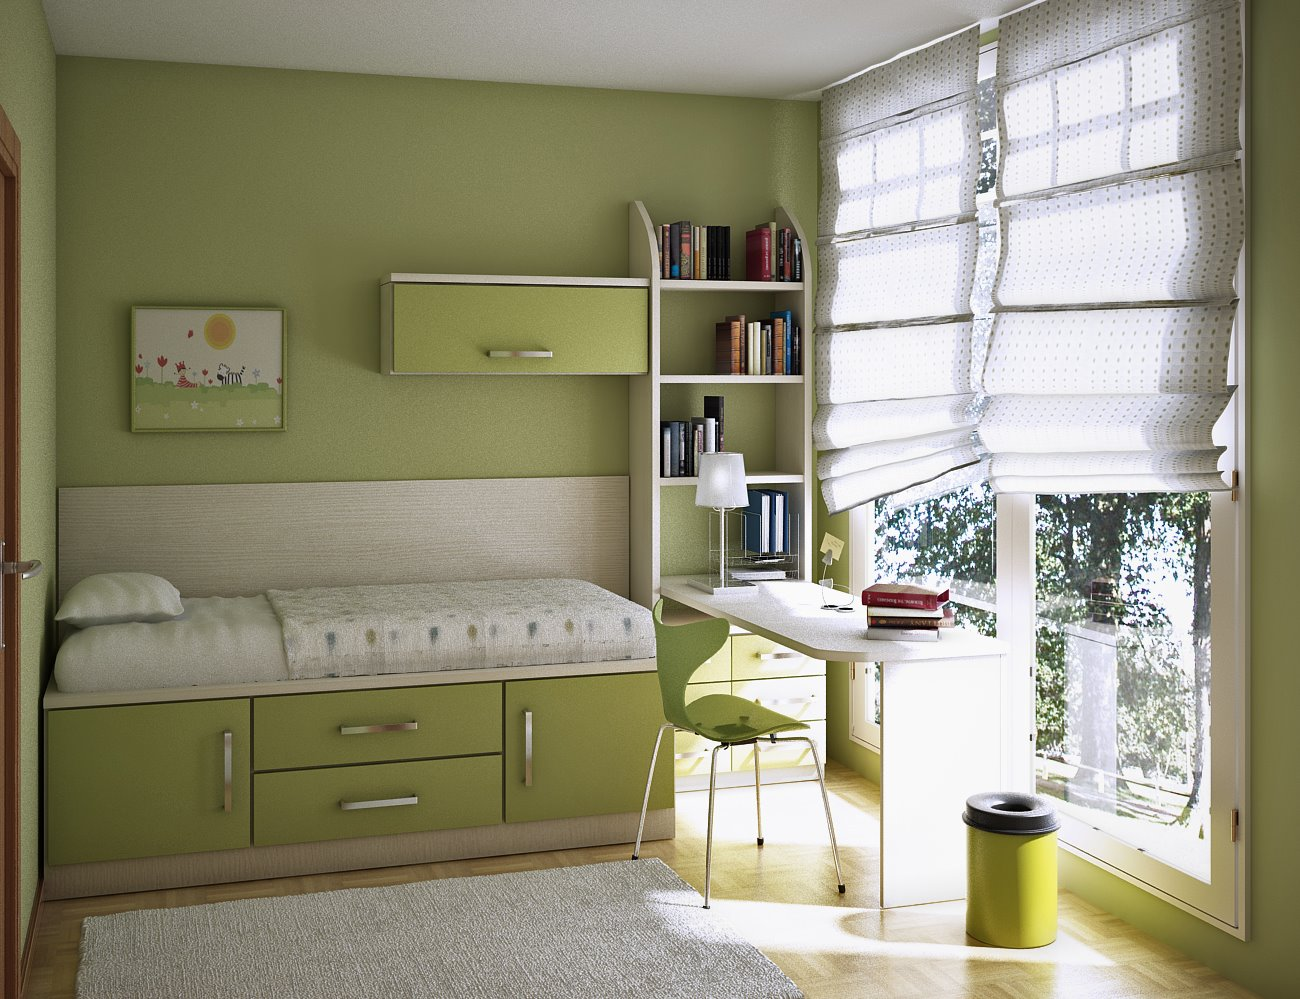 17 Cool Teen Room Ideas - DigsDigs on Teenage Room  id=91010